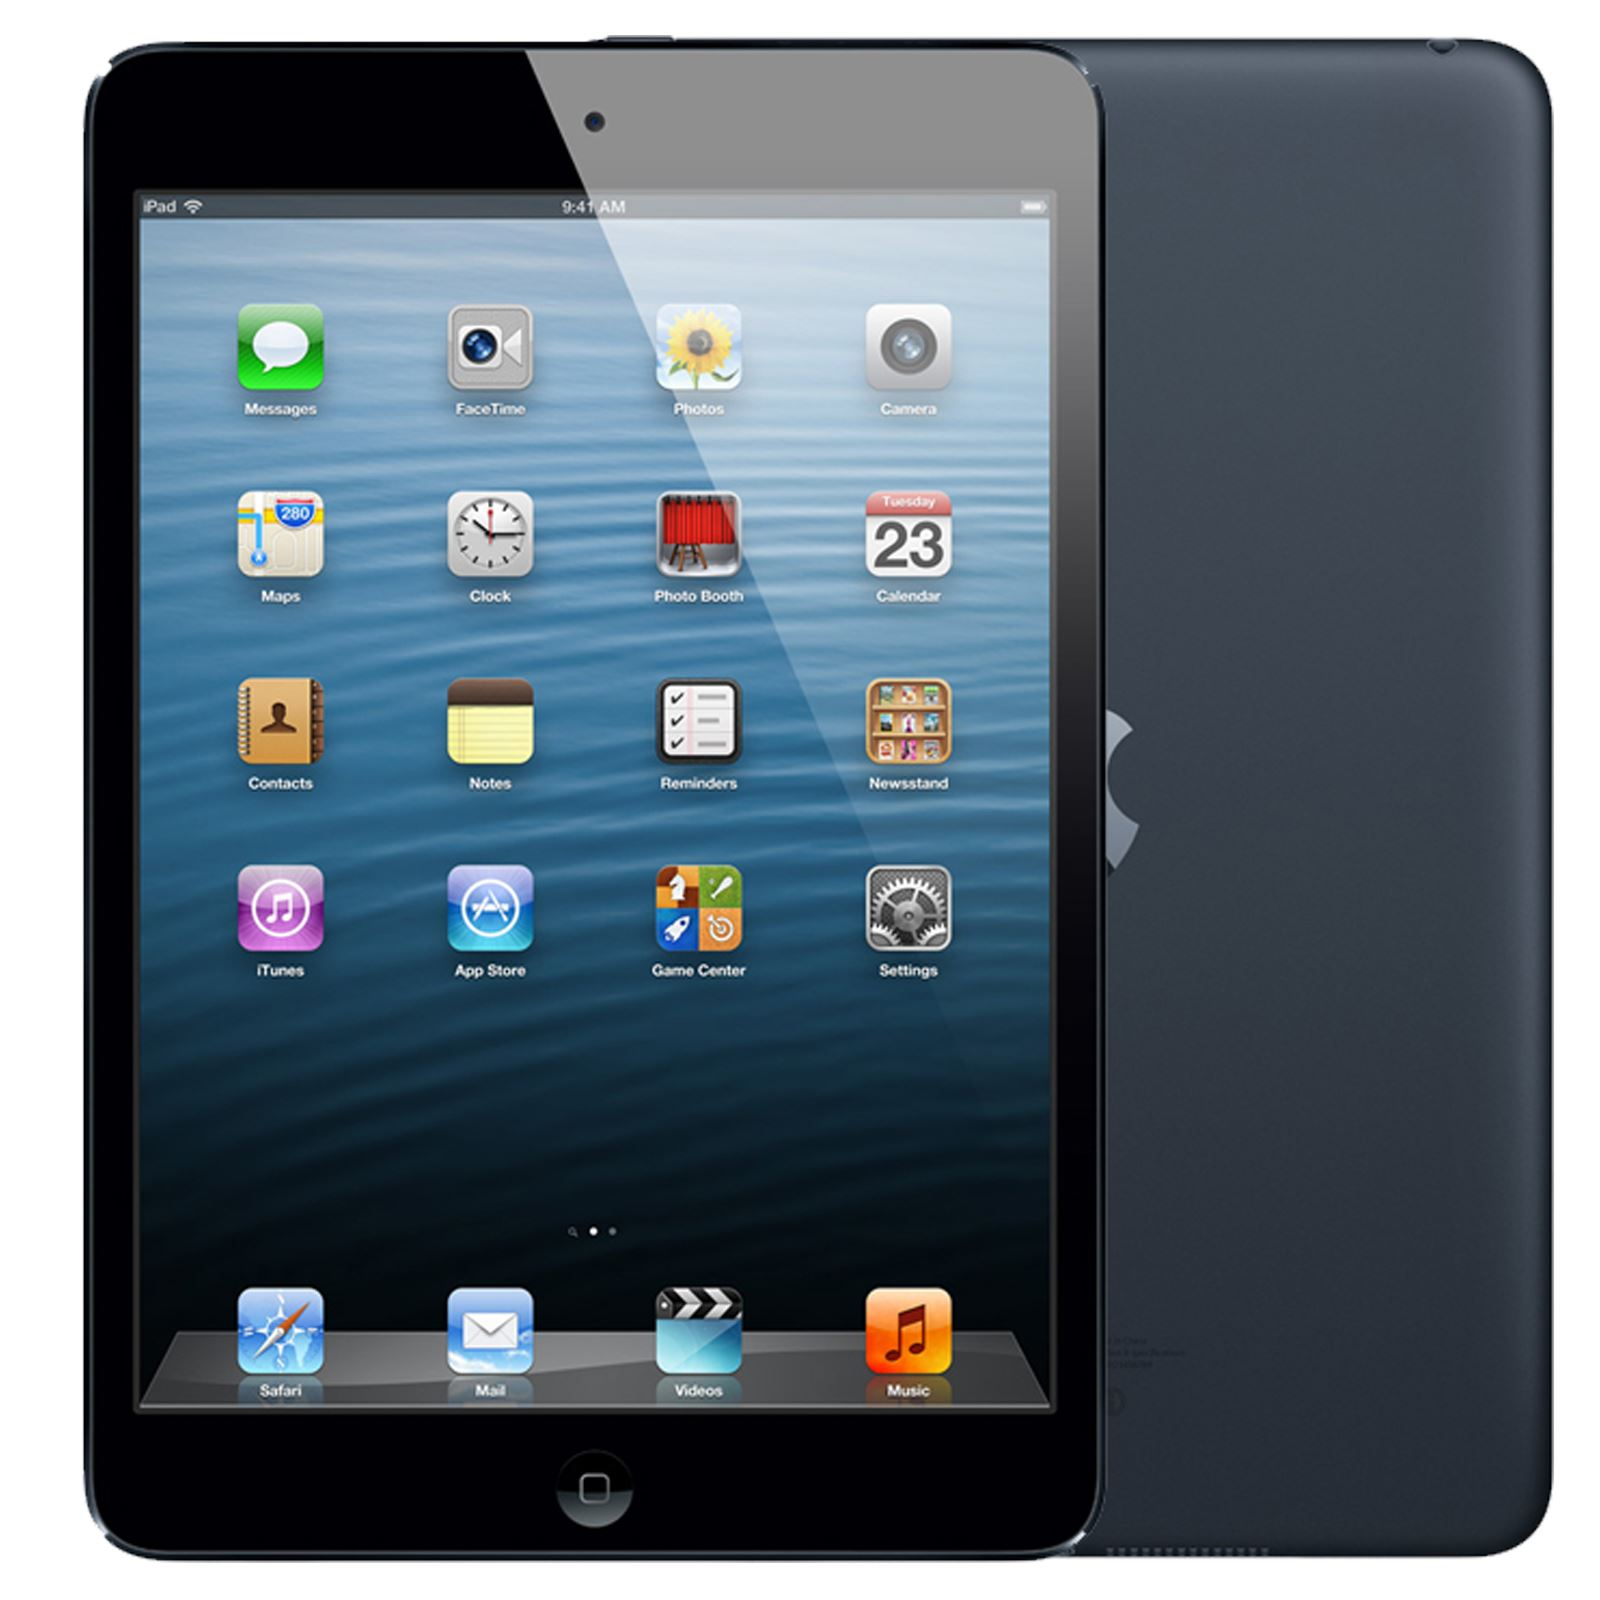 apple ipad mini 2 wi fi 16 gb space grey tablet 7 9 inch me276b a 20448 x 1536 885909708239 ebay. Black Bedroom Furniture Sets. Home Design Ideas